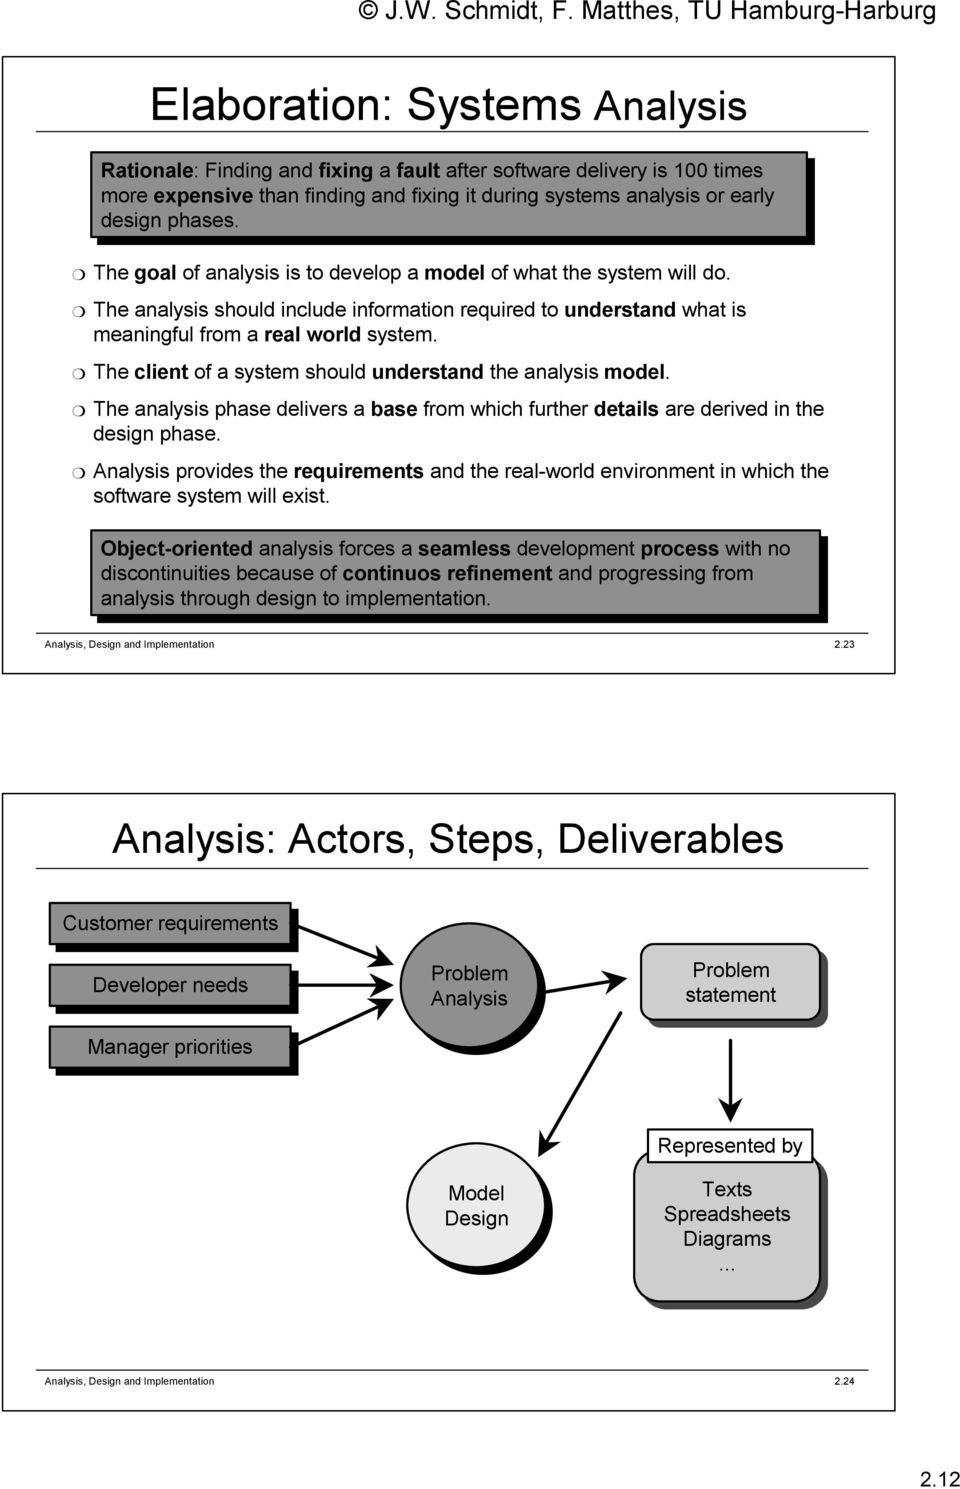 The client of a system should understand the analysis model. The analysis phase delivers a base from which further details are derived in the design phase.